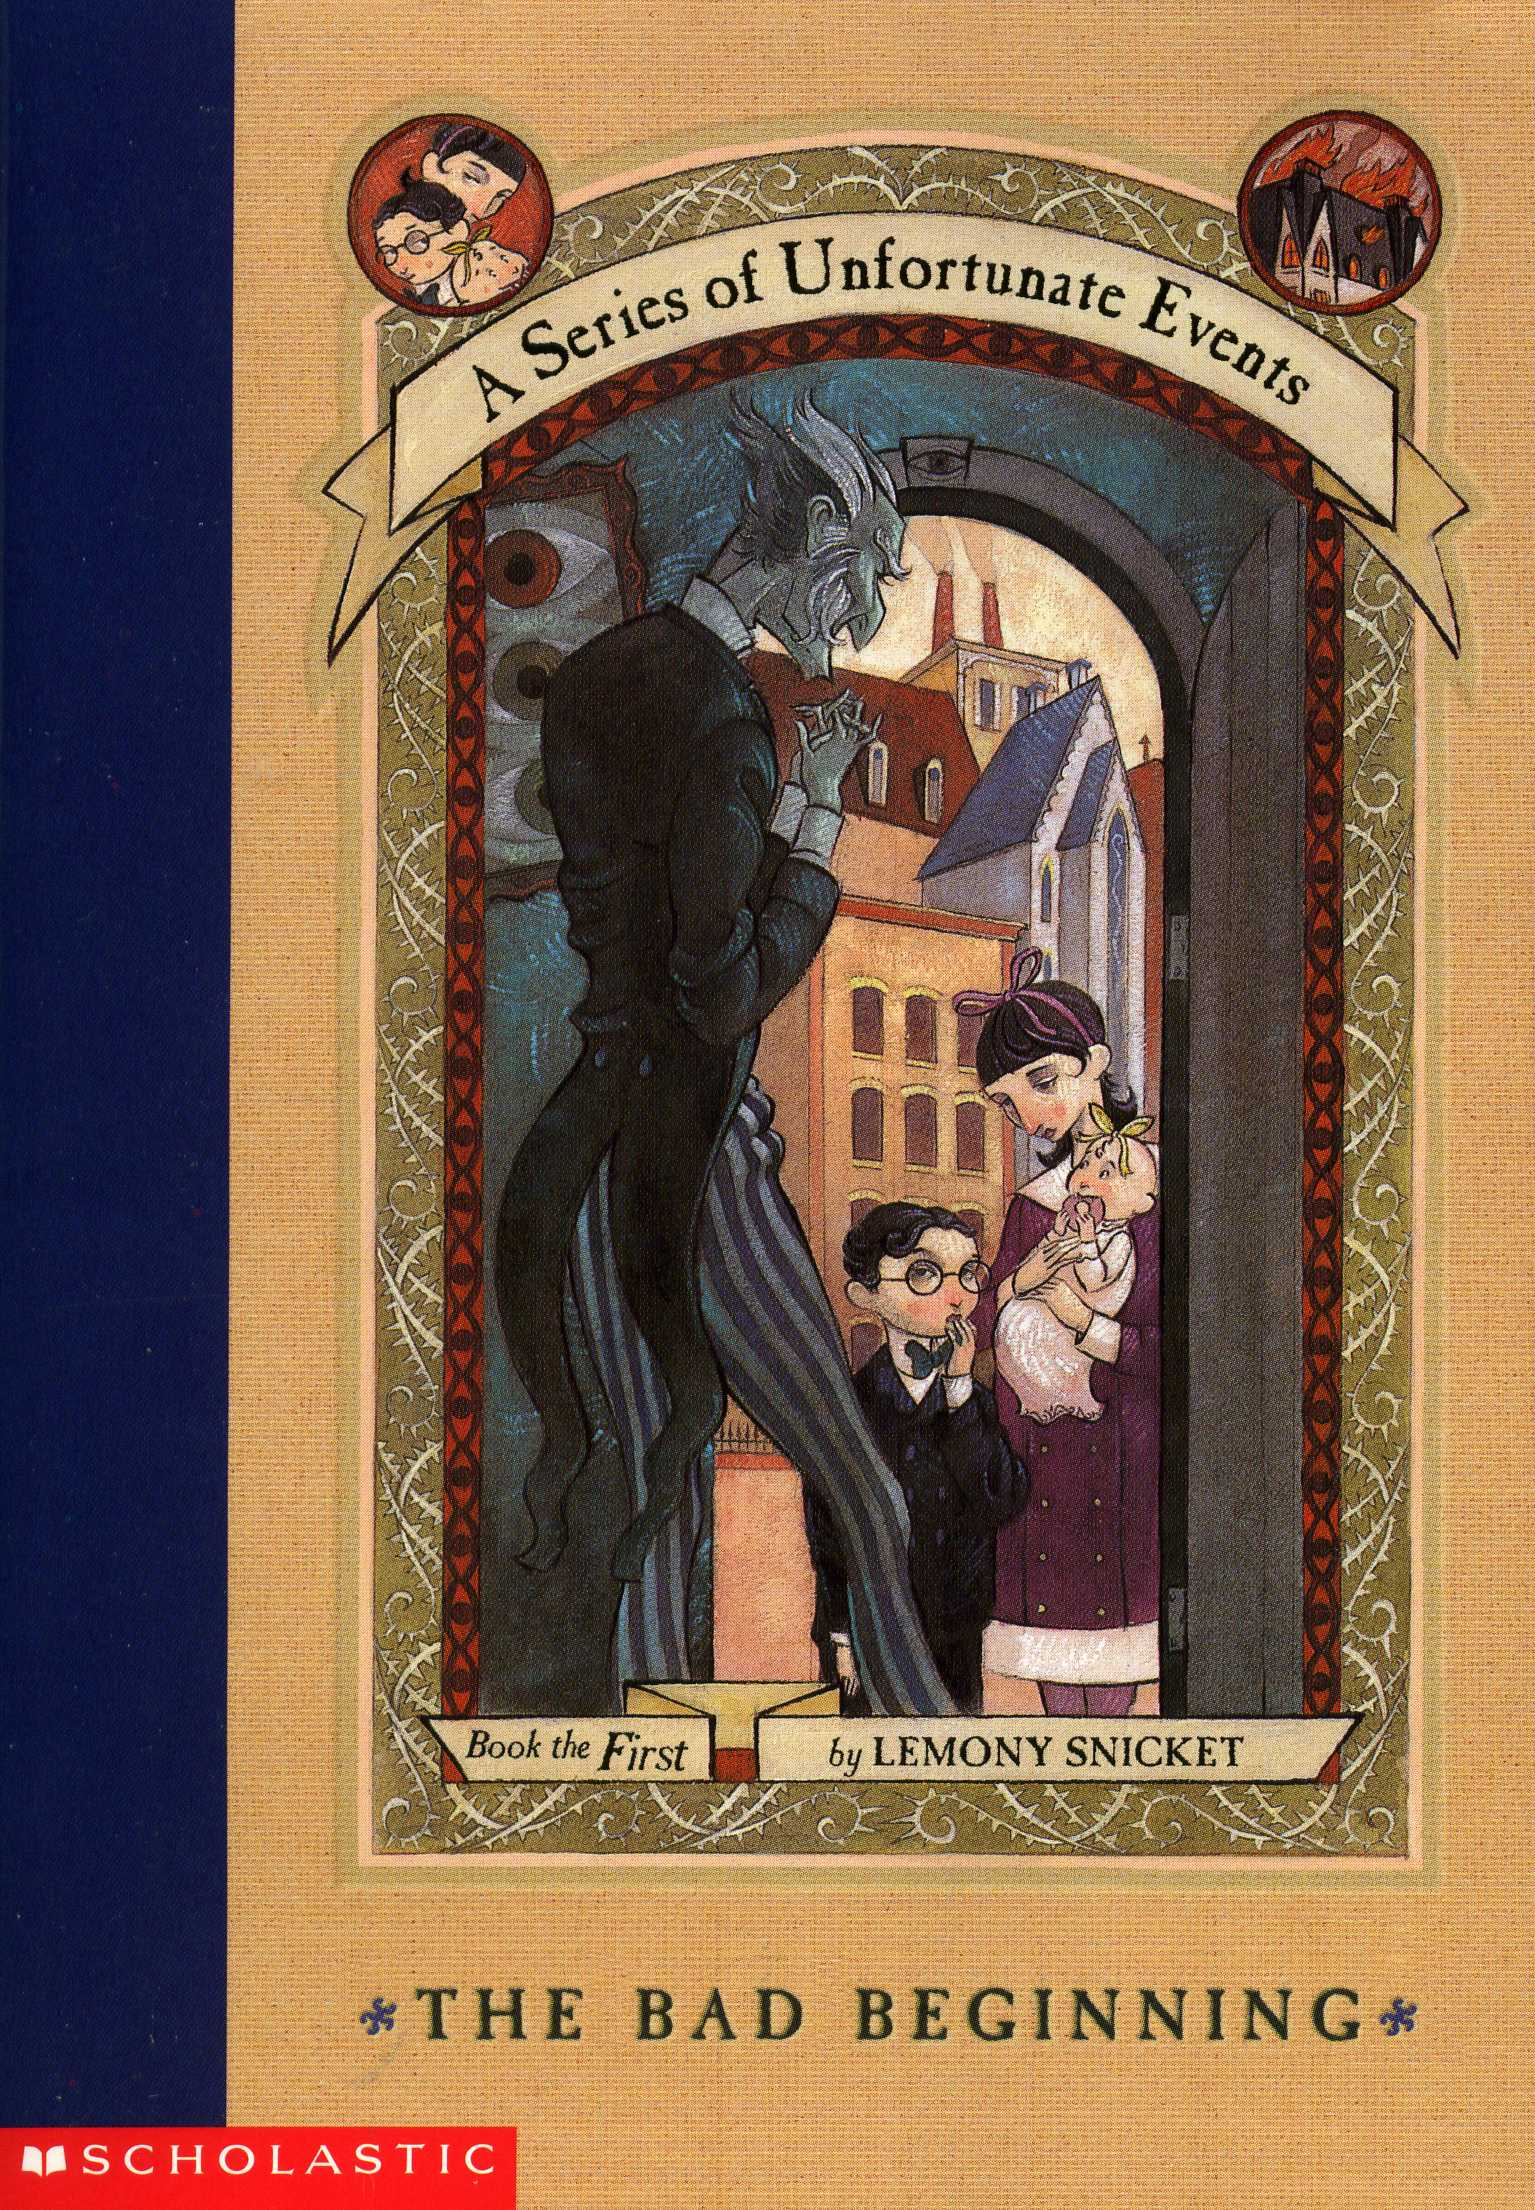 The Bad Beginning - Book 1 of A Series of Unfortunate Events